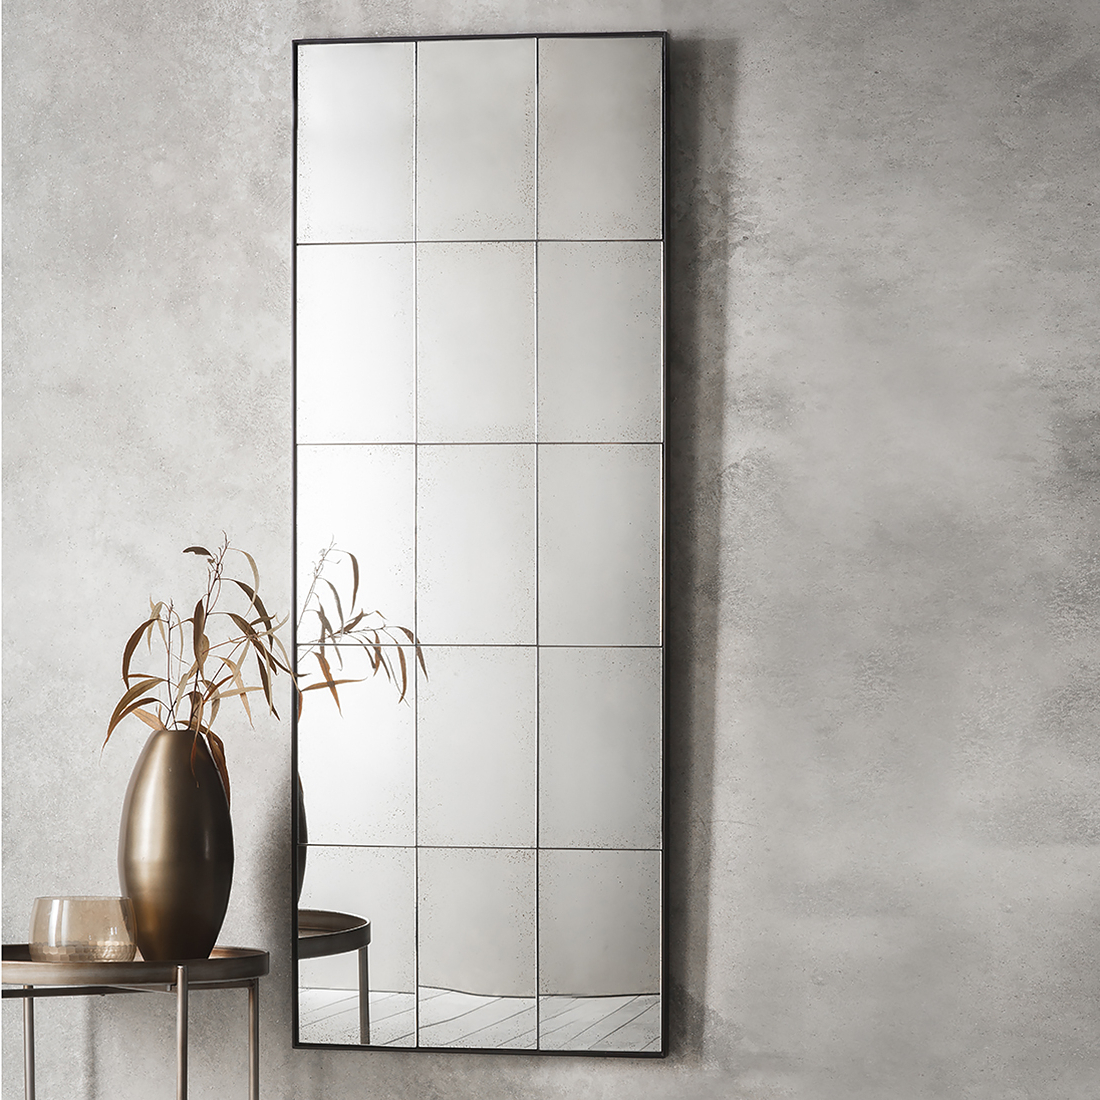 Widely Used Rectangular Black Panel Mirror With Vintage Glass Regarding Unusual Large Wall Mirrors (View 20 of 20)